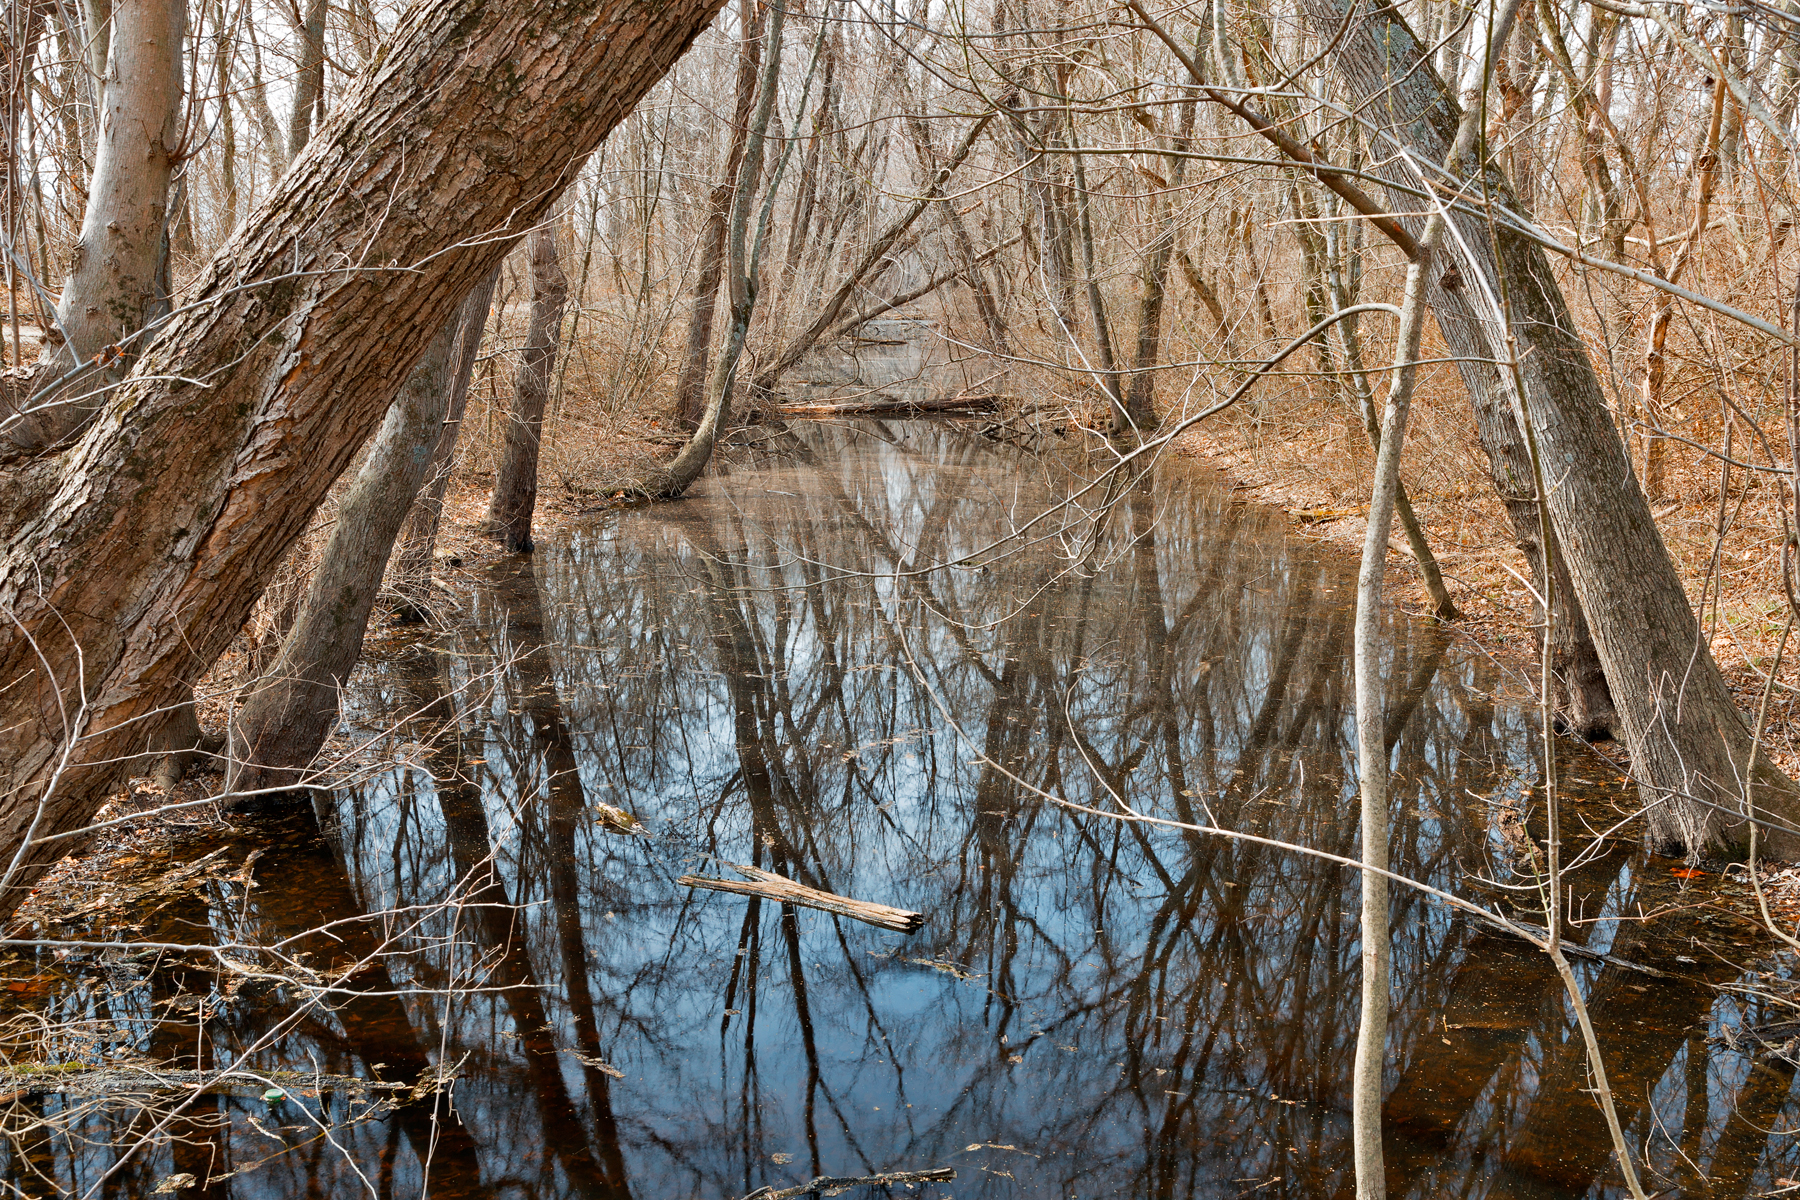 Sycamore Landing Creek, America, Scenery, States, Spectacular, HQ Photo